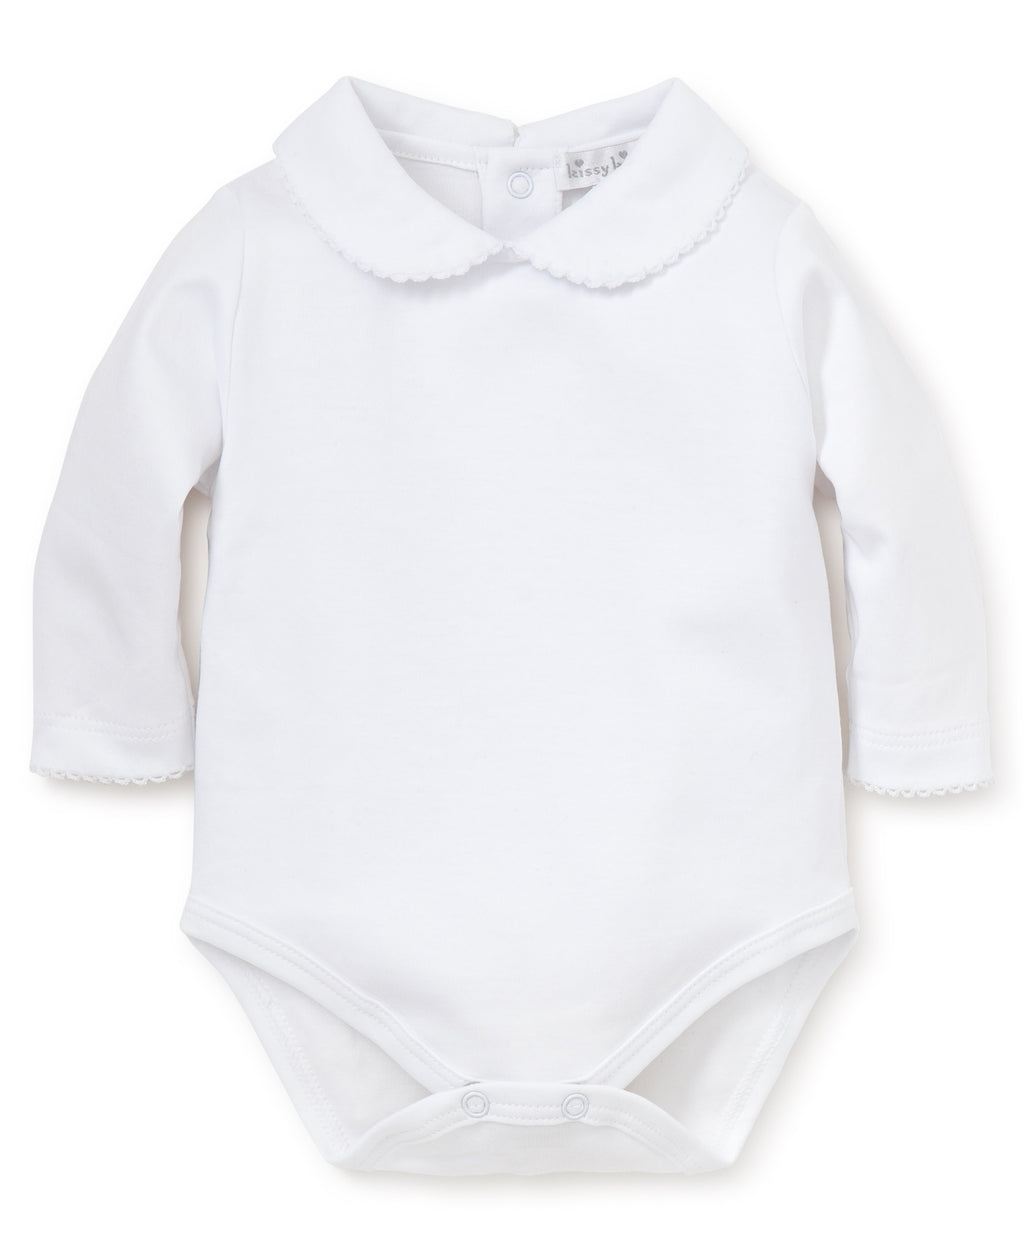 White Kissy Basics L/S Bebe Collar Bodysuit